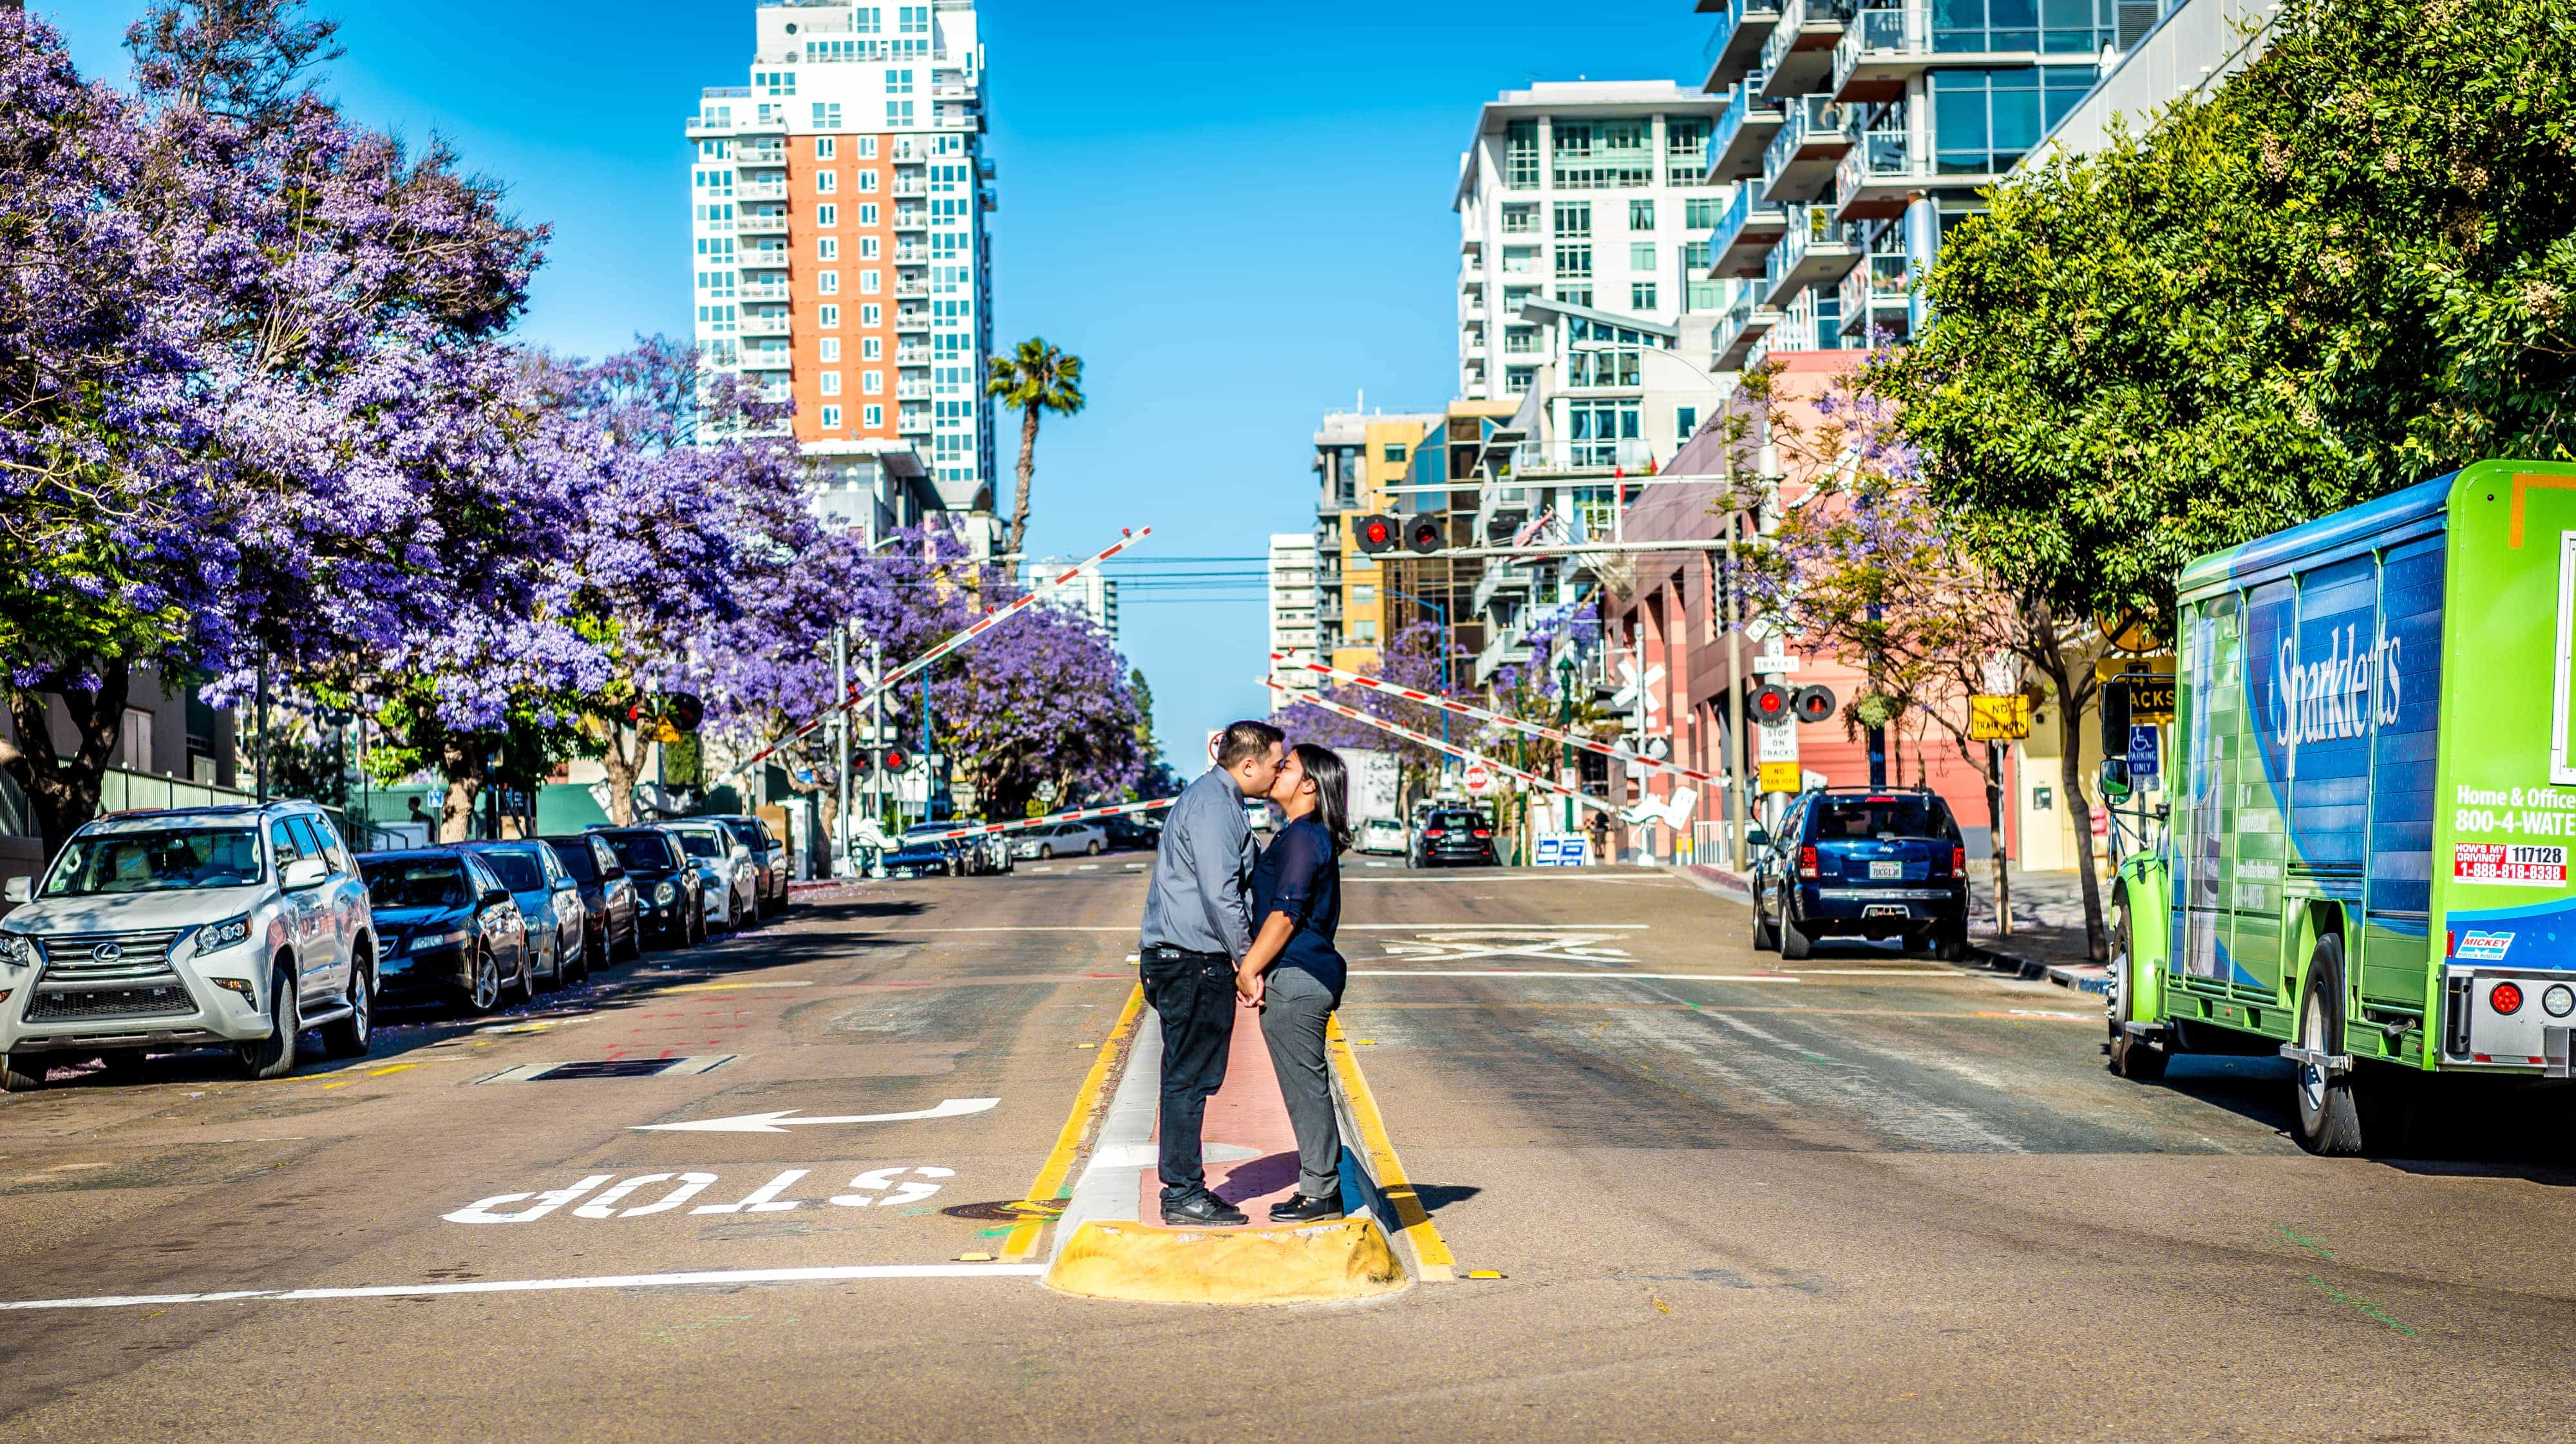 Bride and groom kissing in the middle of the street in San Diego.